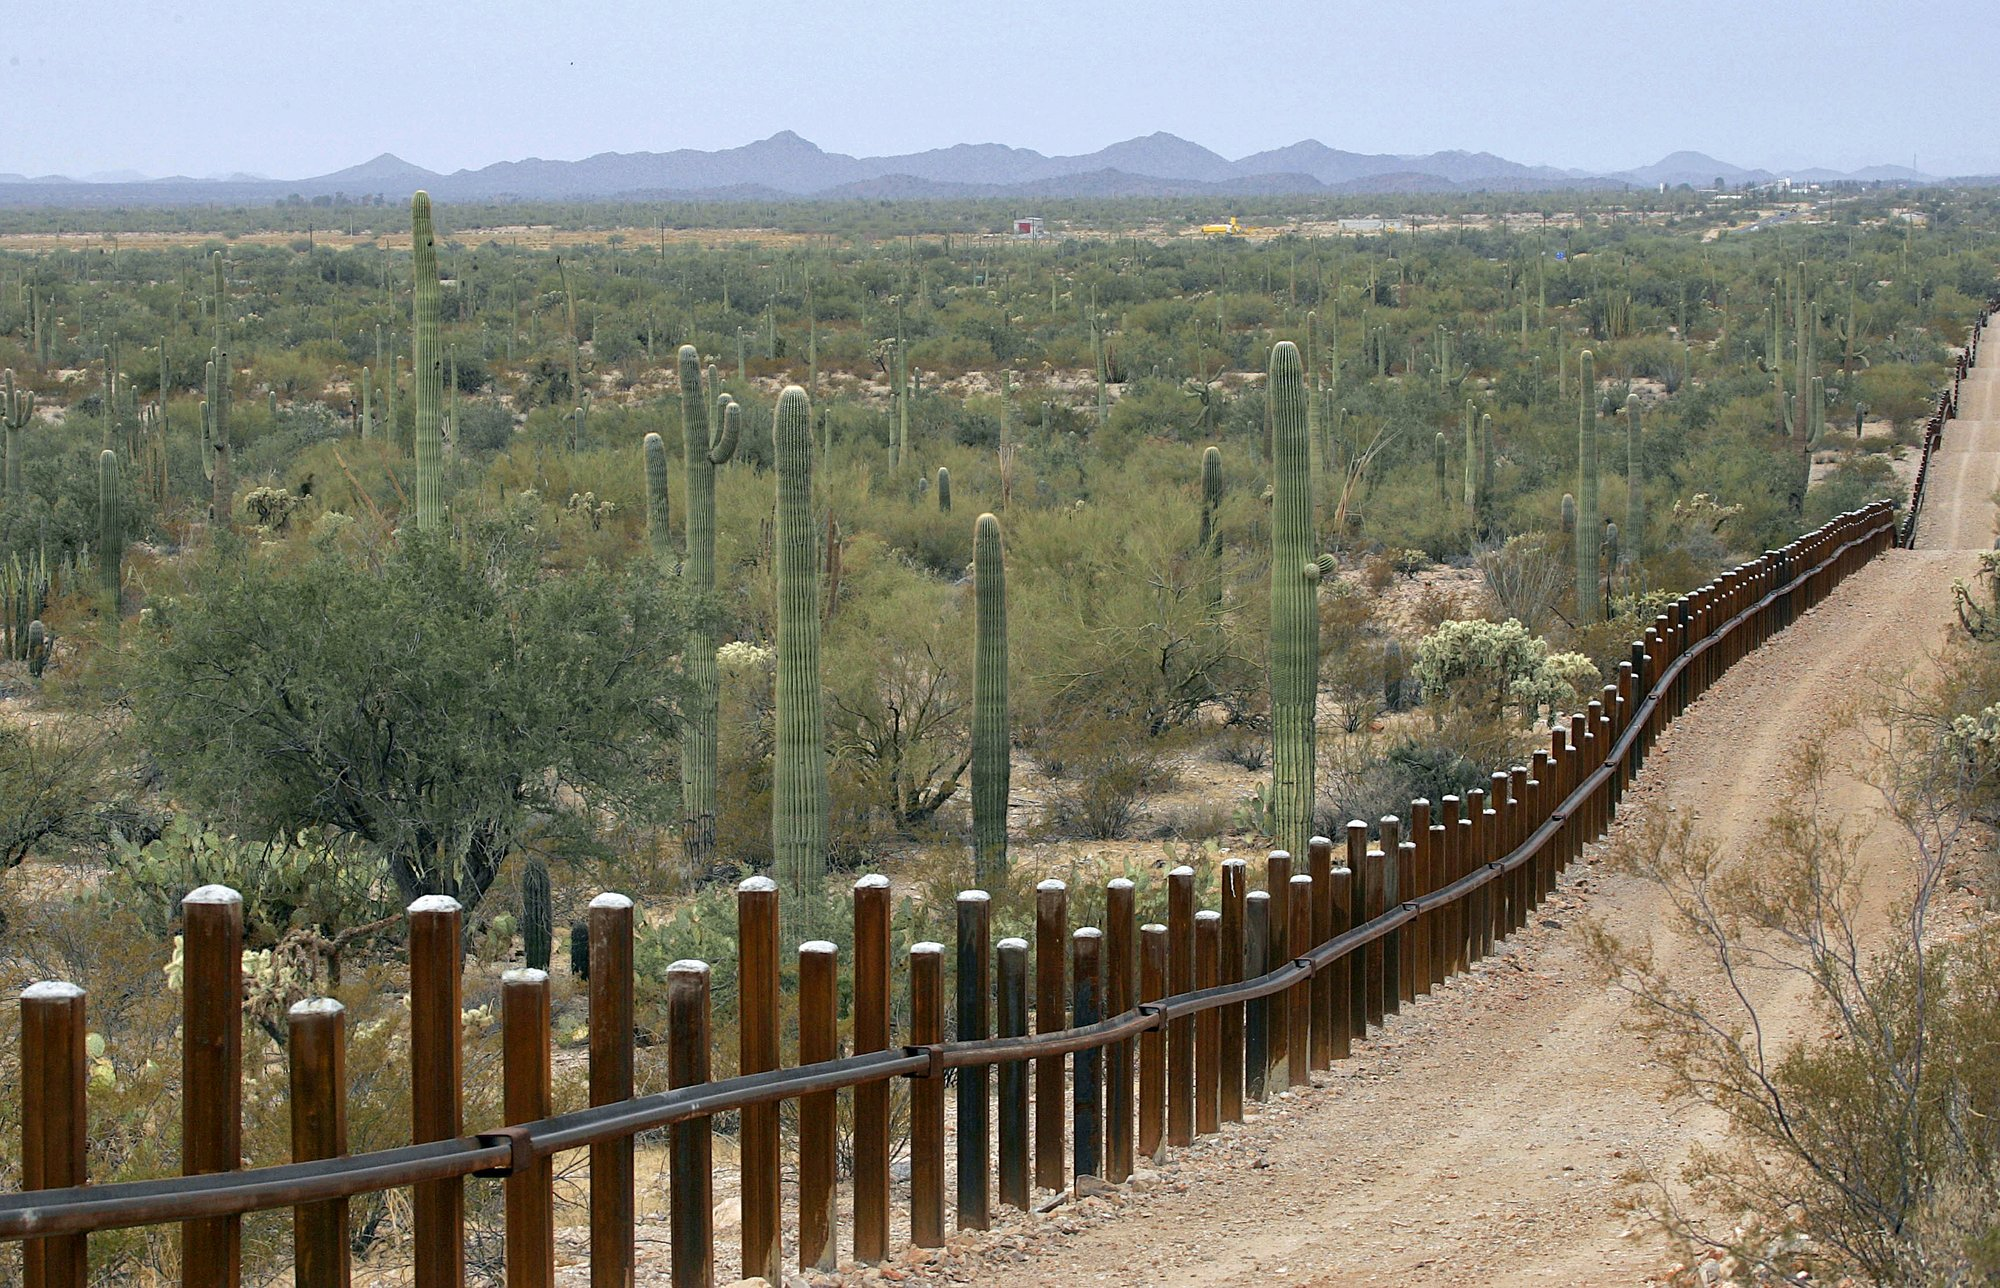 Border wall to go up in national monument, wildlife refuge